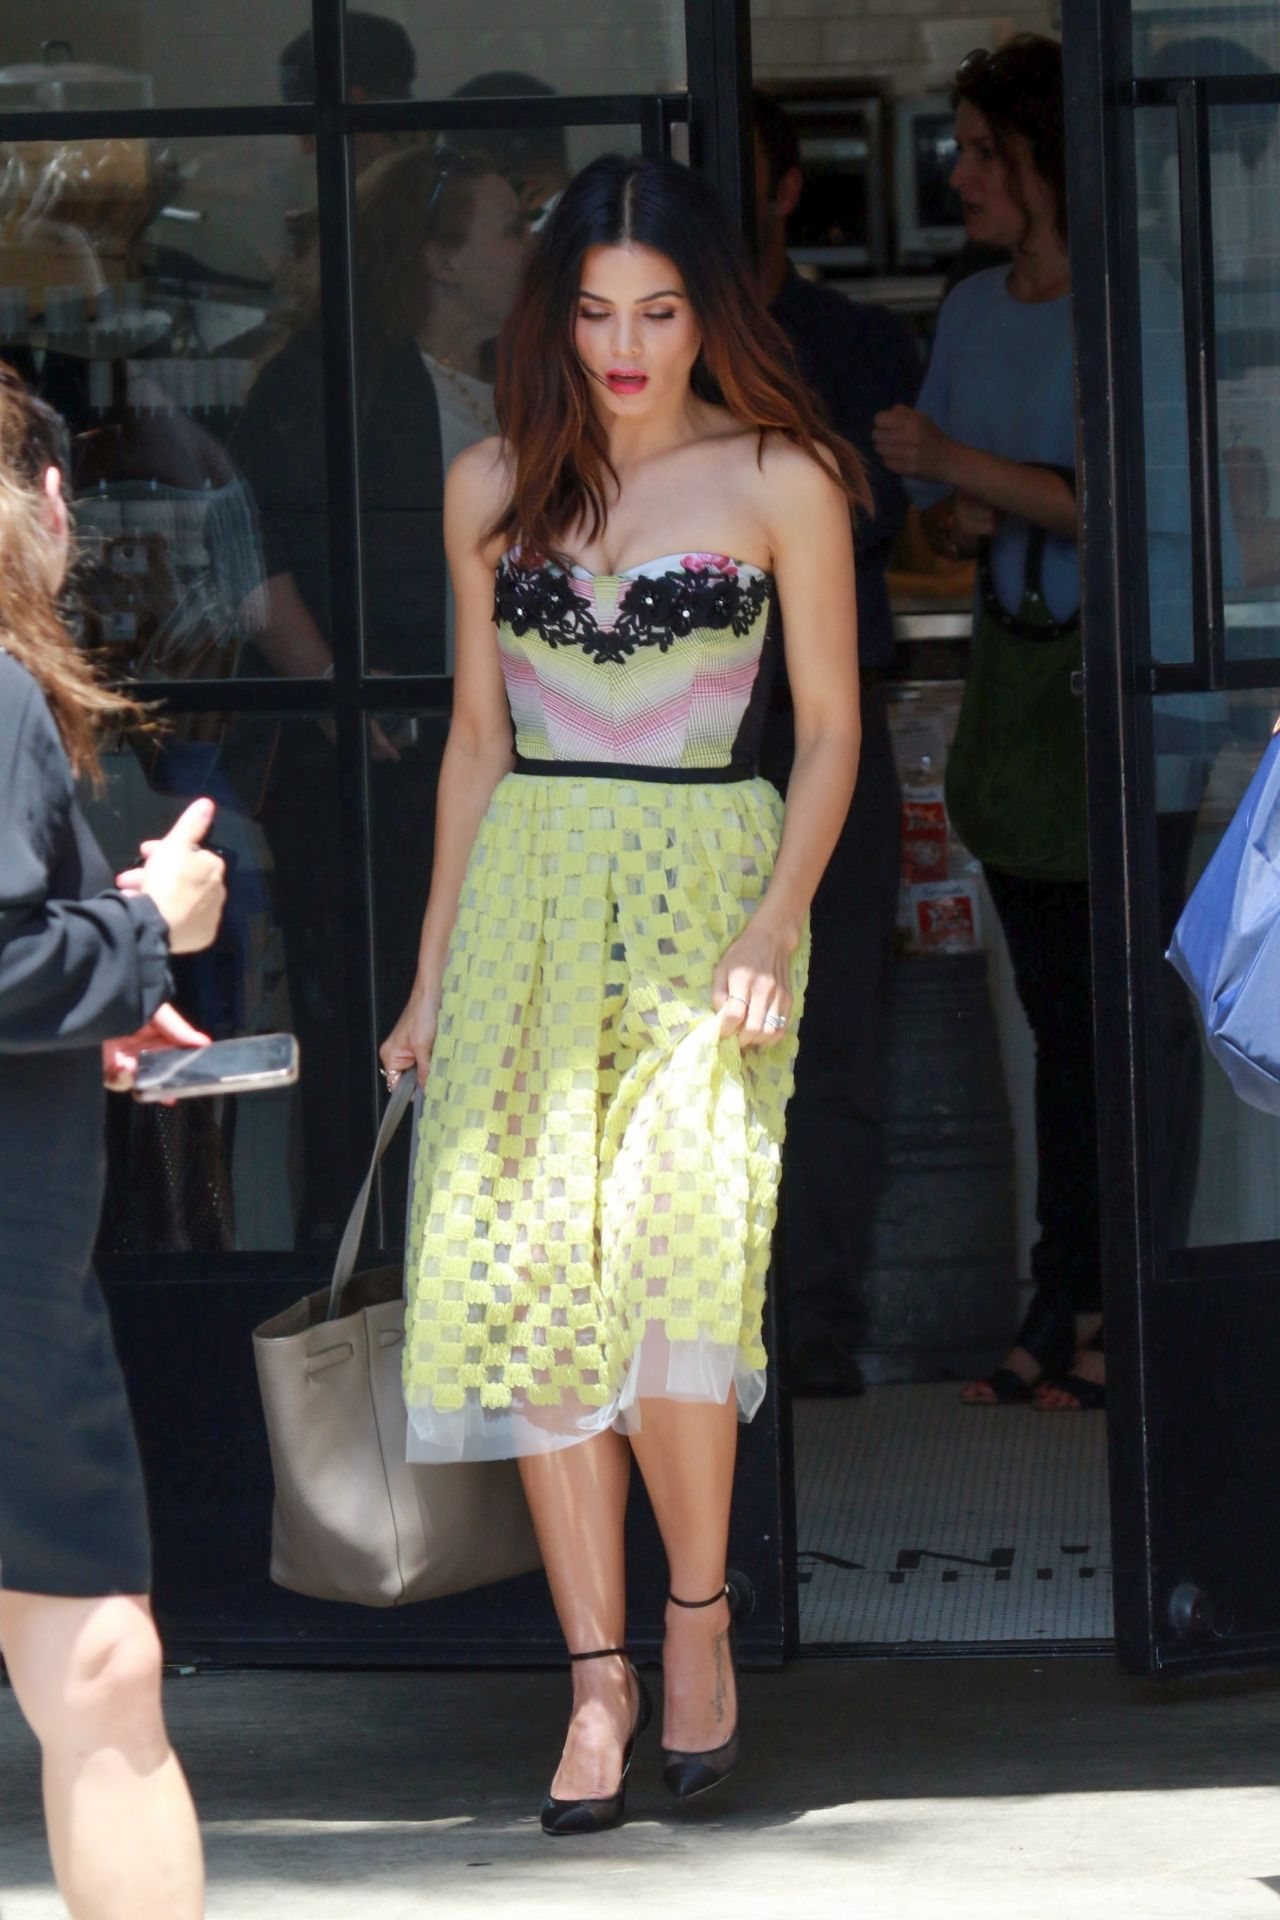 Jenna dewan leaving joans on third in hollywood nudes (93 images)